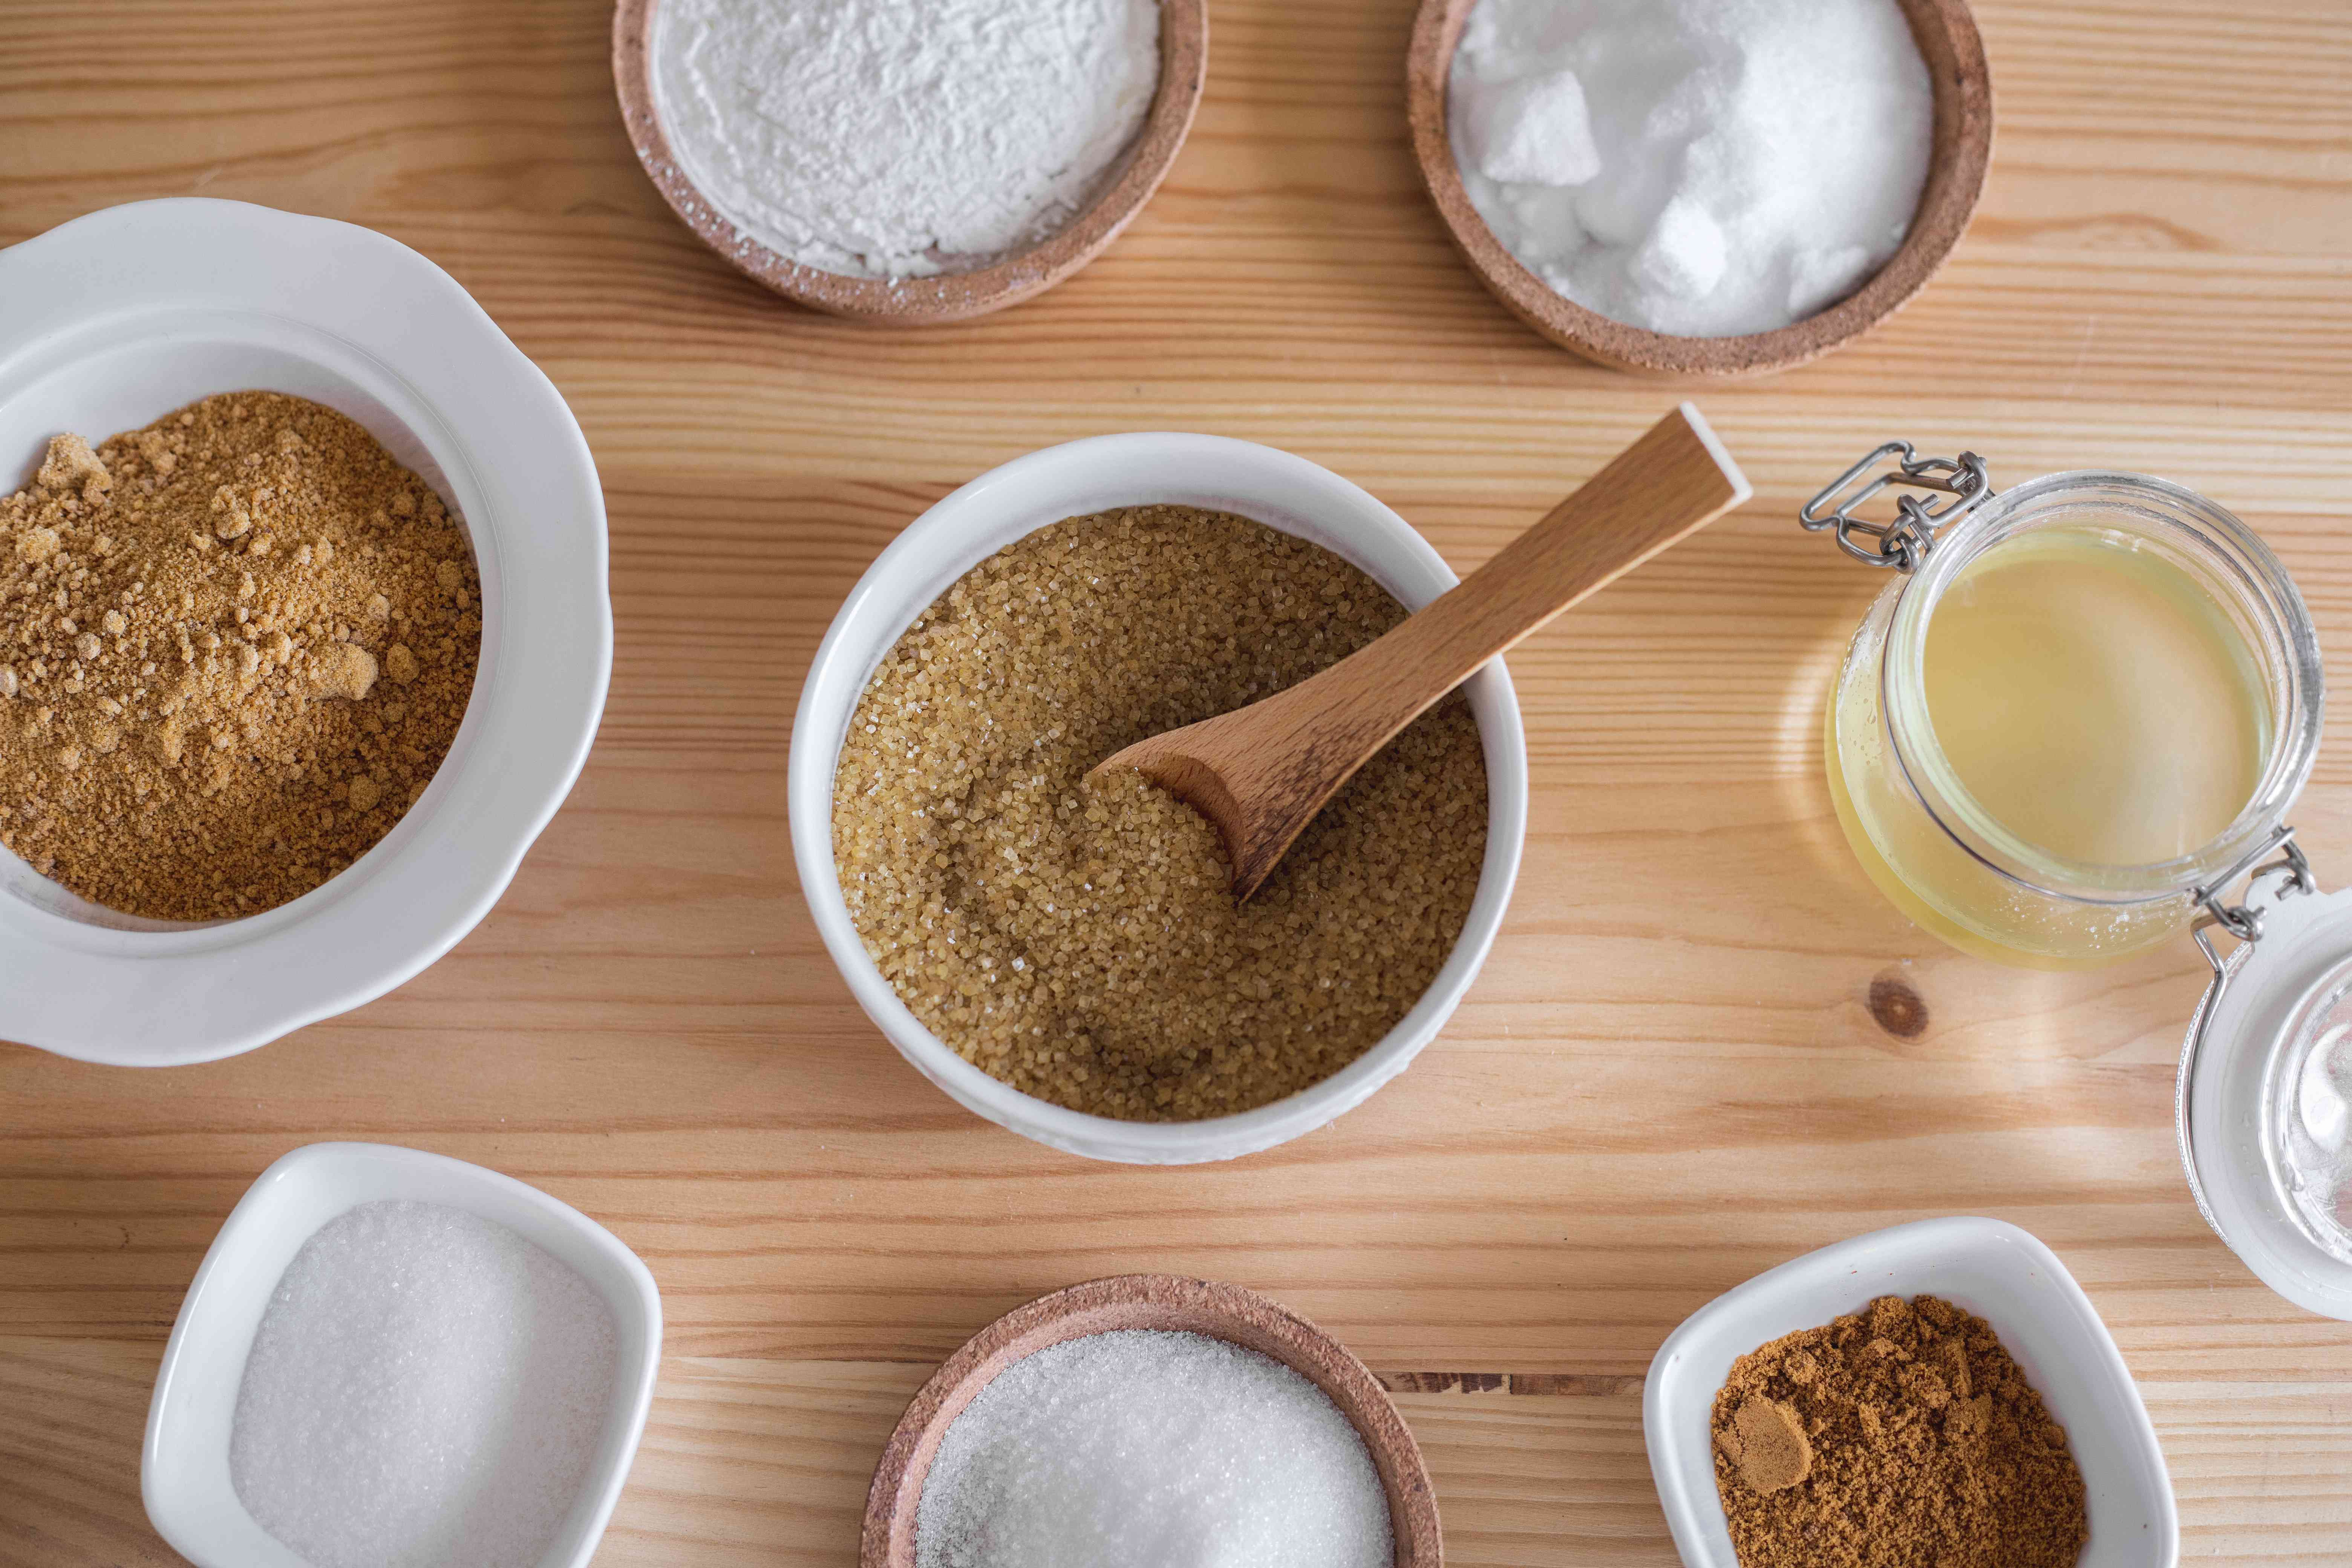 overhead shots of different types of brown and white sugars in bowls on wooden table